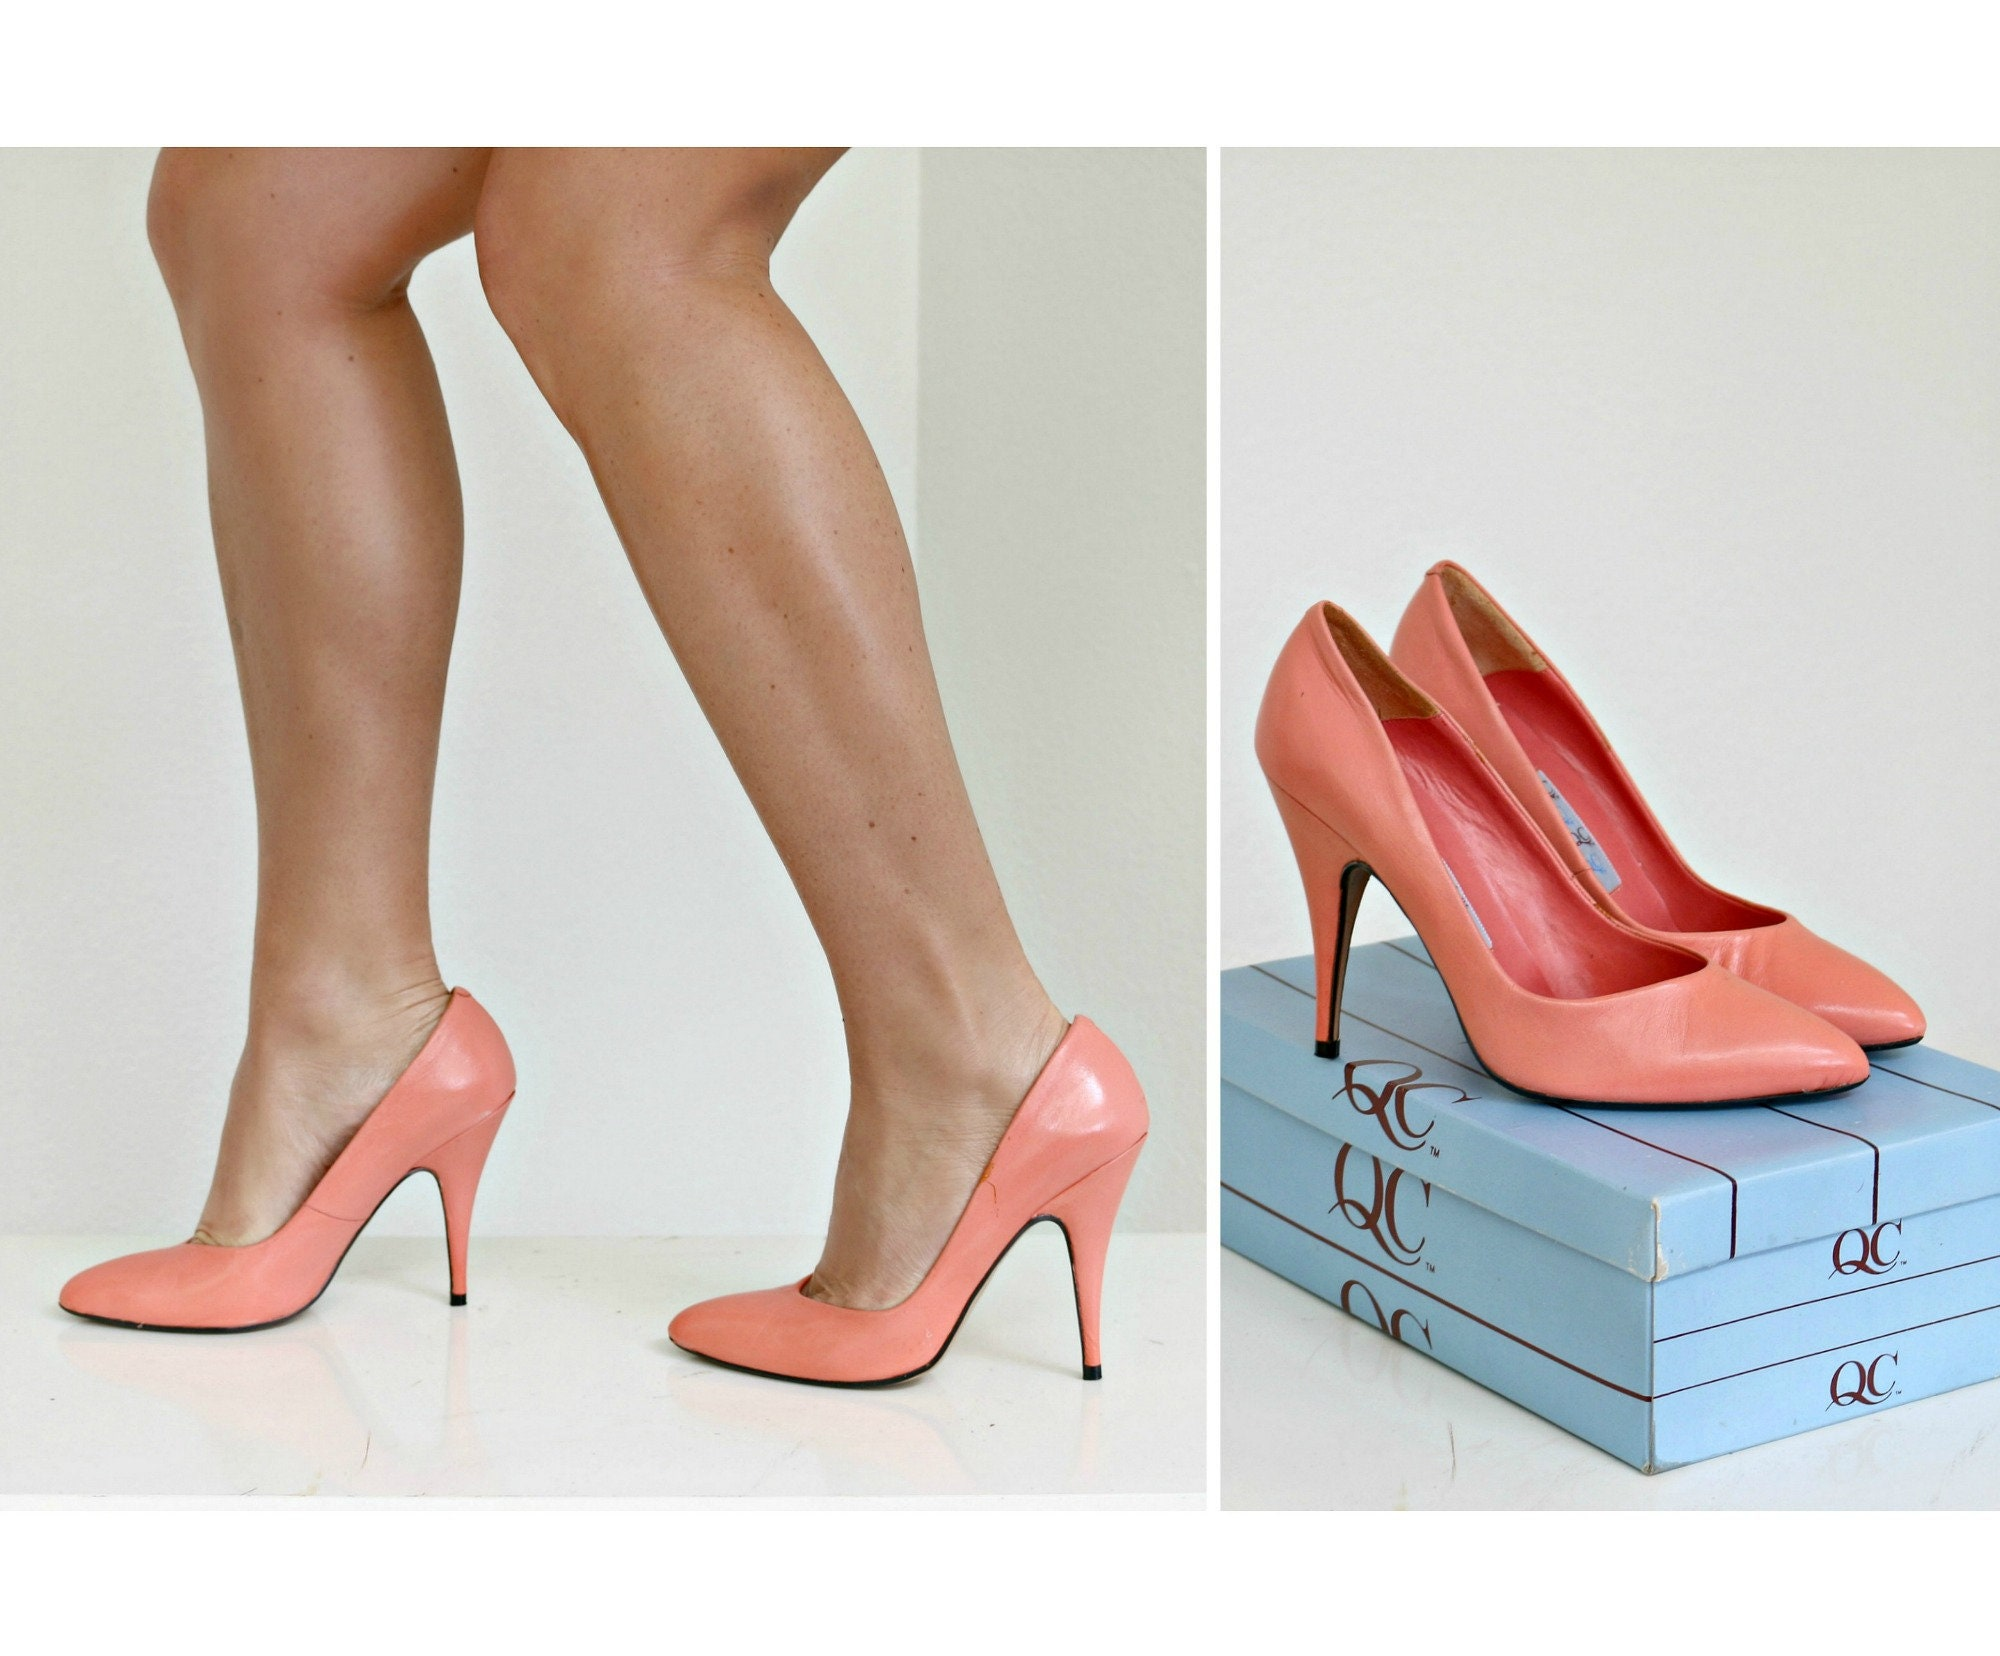 Size 12 4 567 Heels 8 1980s And Bubble Sizes Deadstock Available High Gum QBrdoshxtC